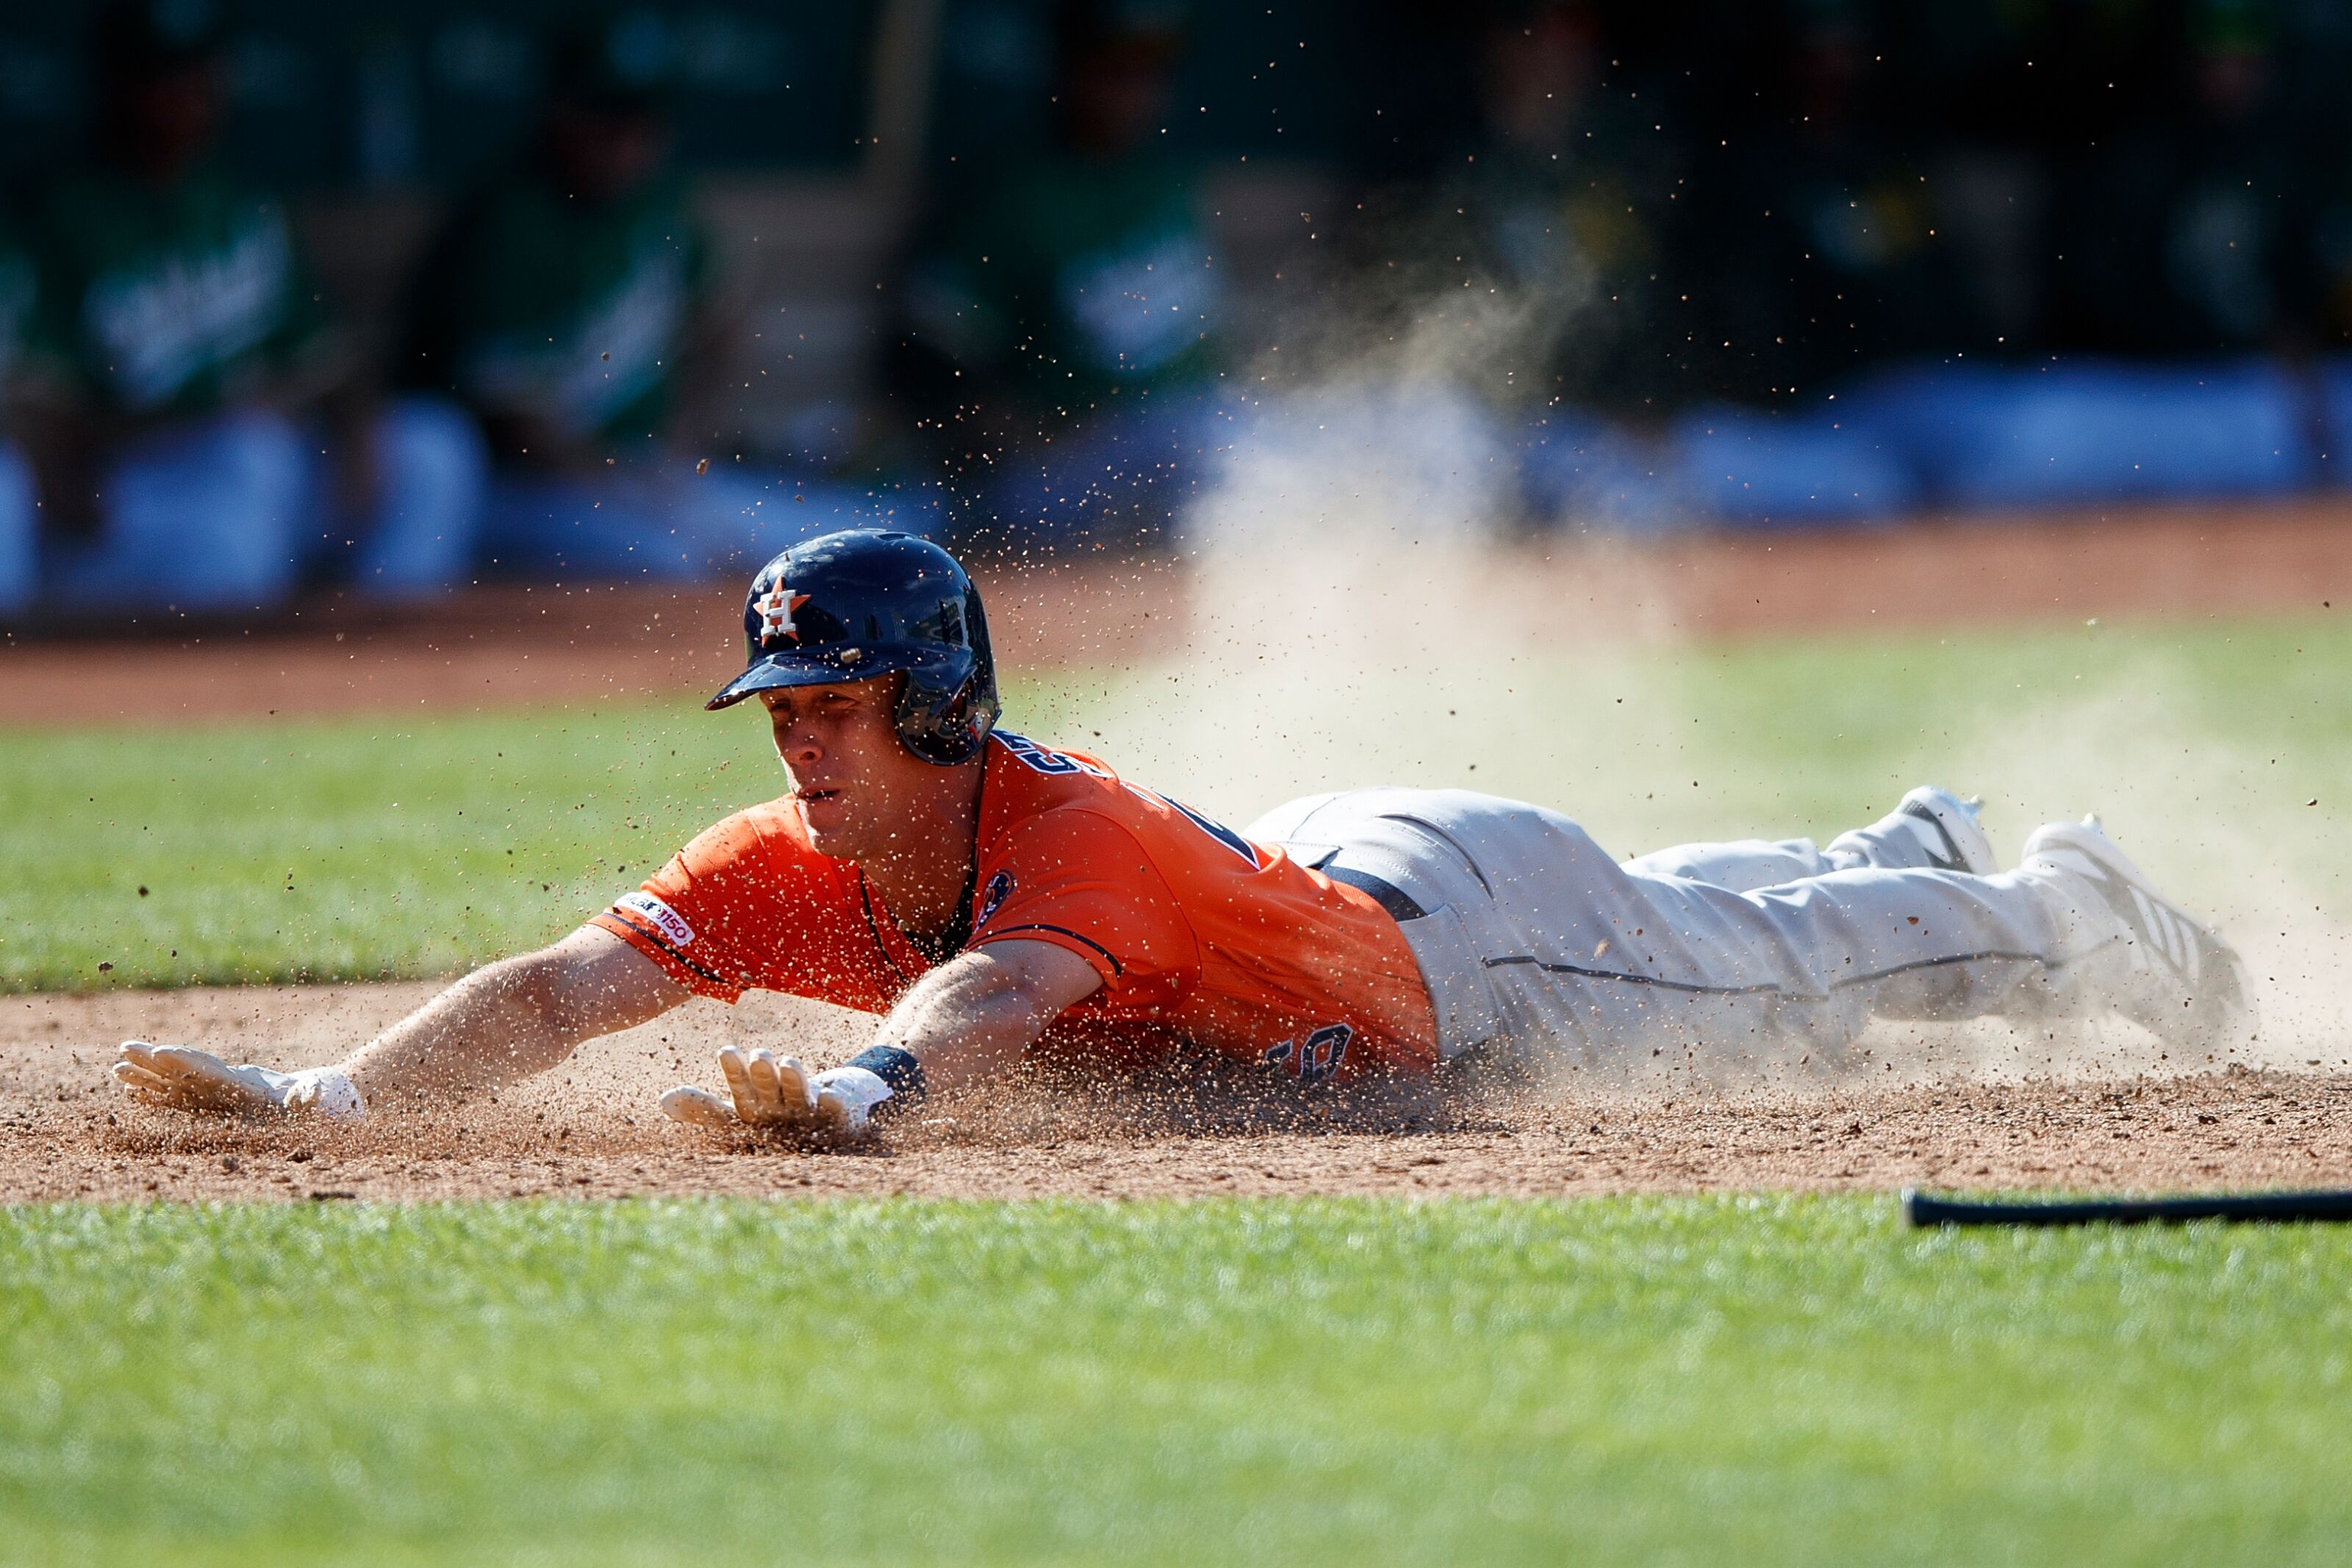 Astros: Should Myles Straw or Tony Kemp stay on the roster?